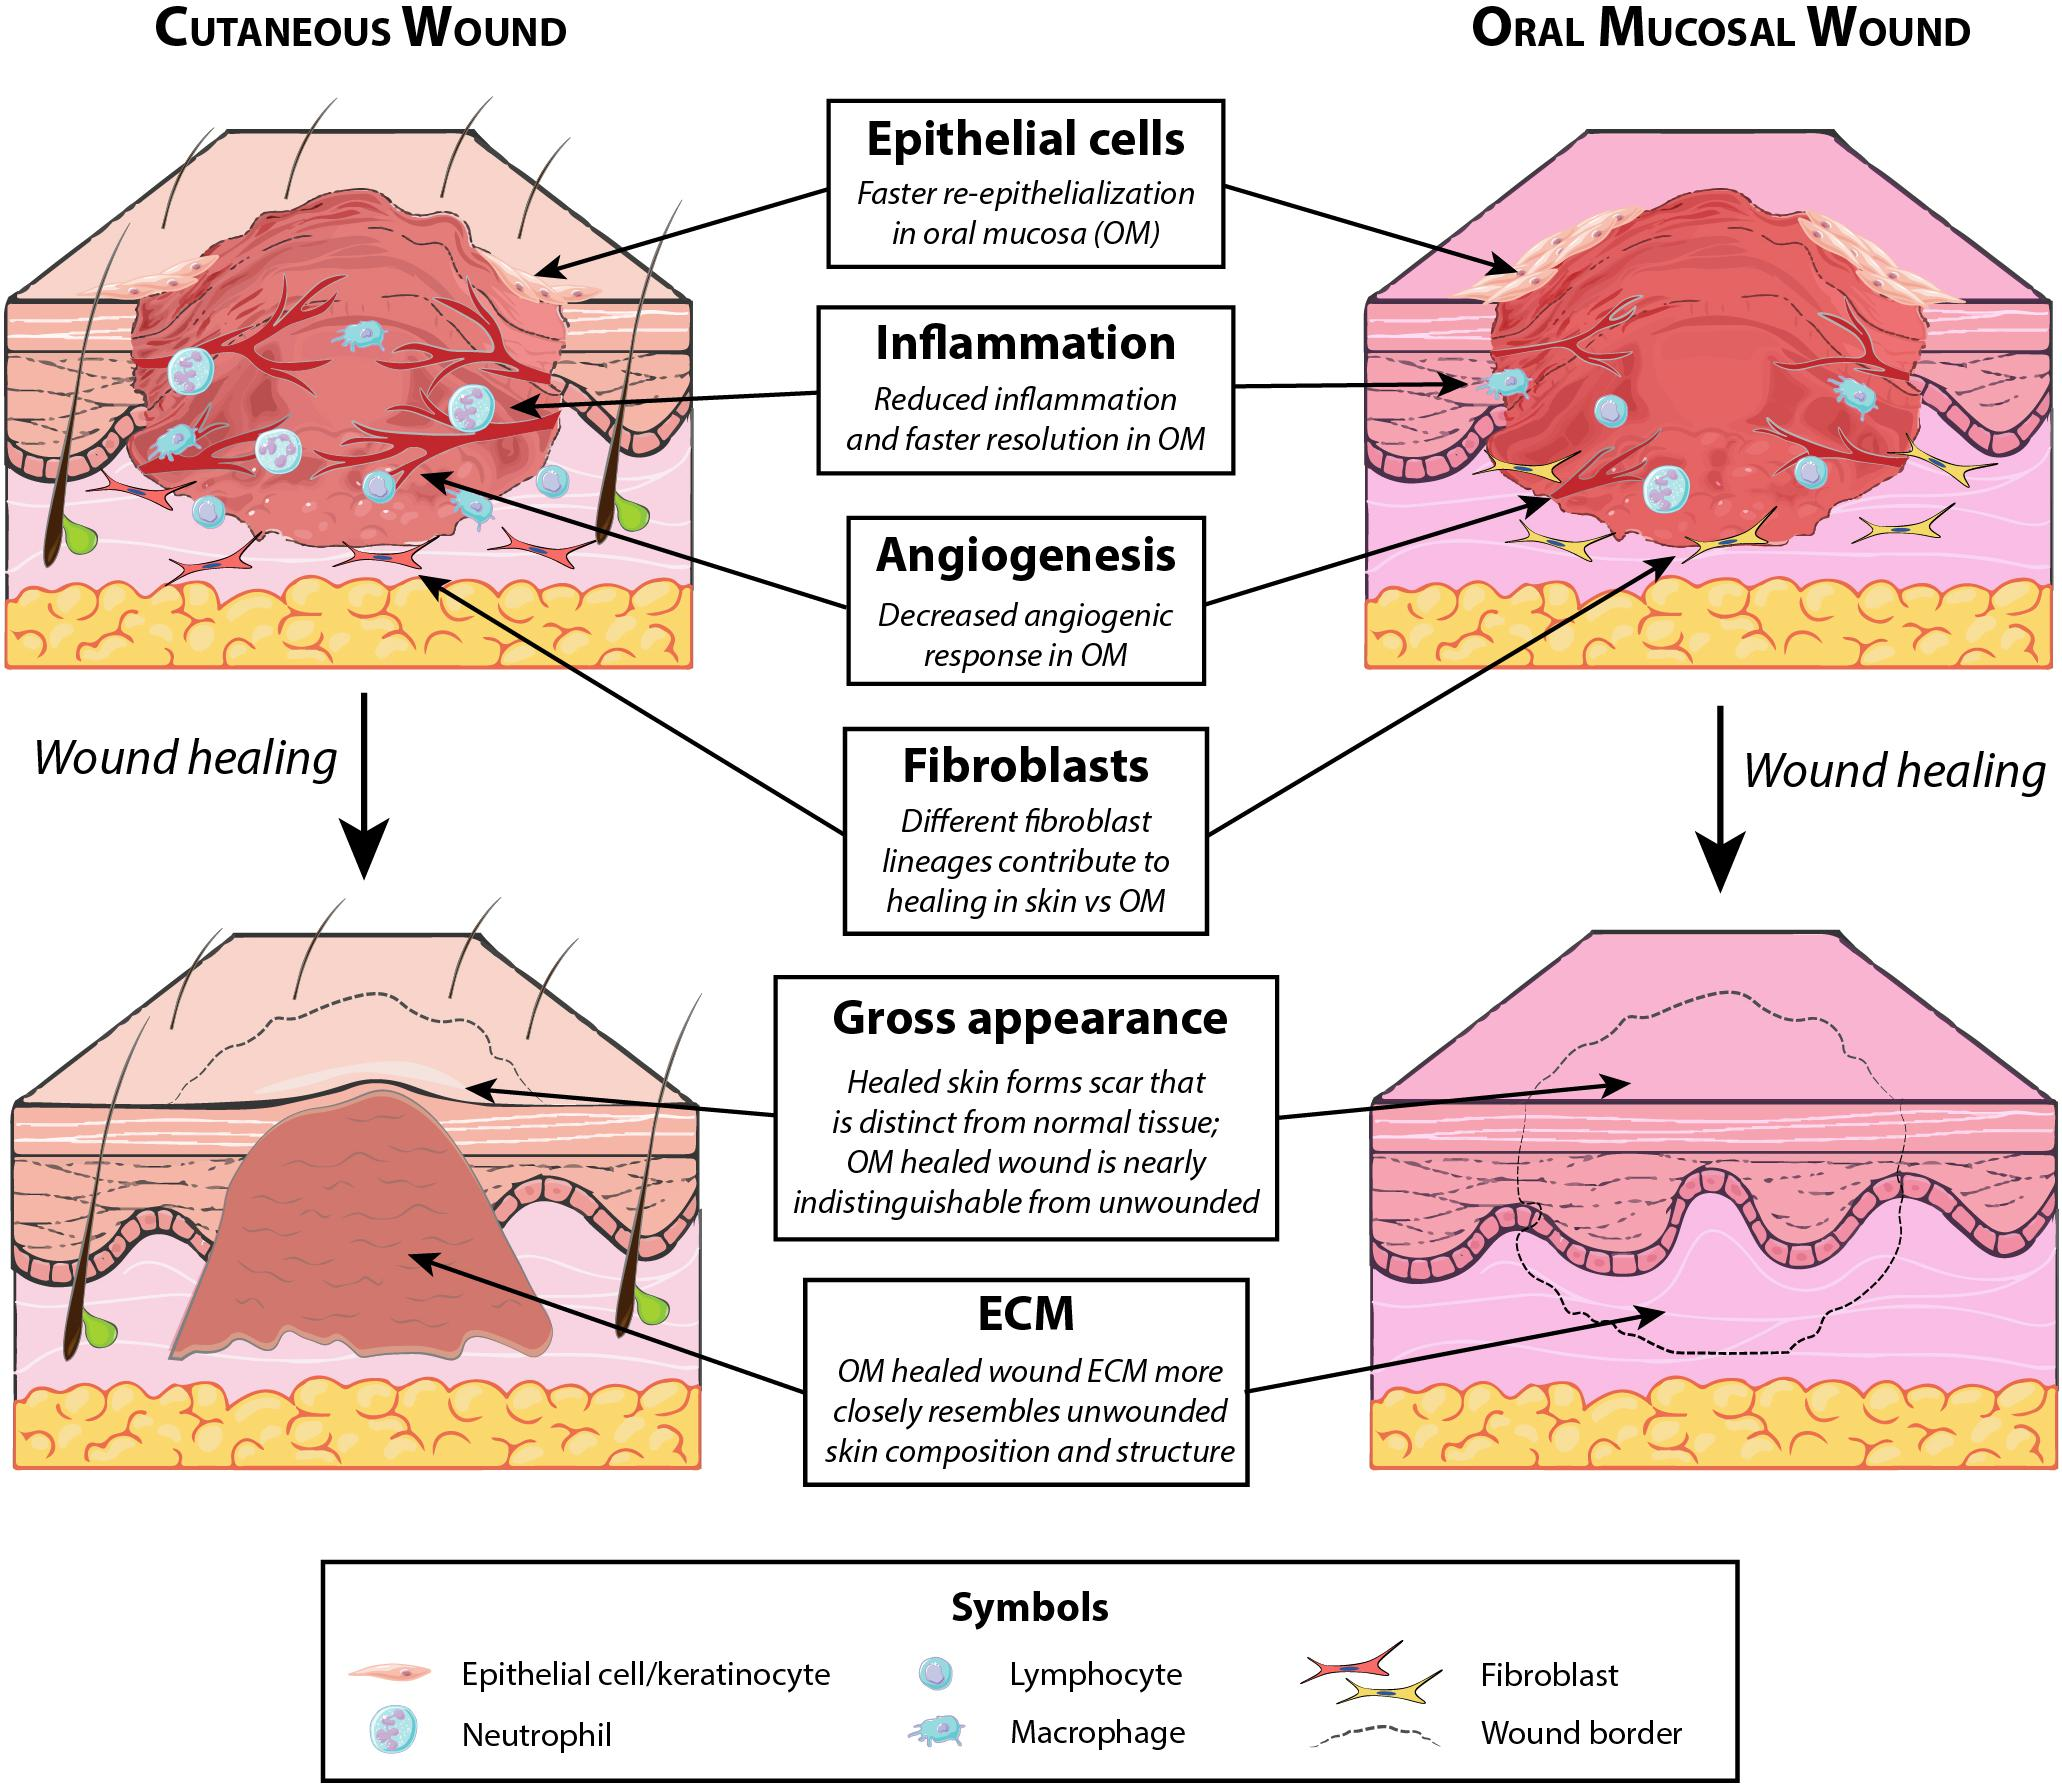 Frontiers The Spectrum Of Scarring In Craniofacial Wound Repair Physiology